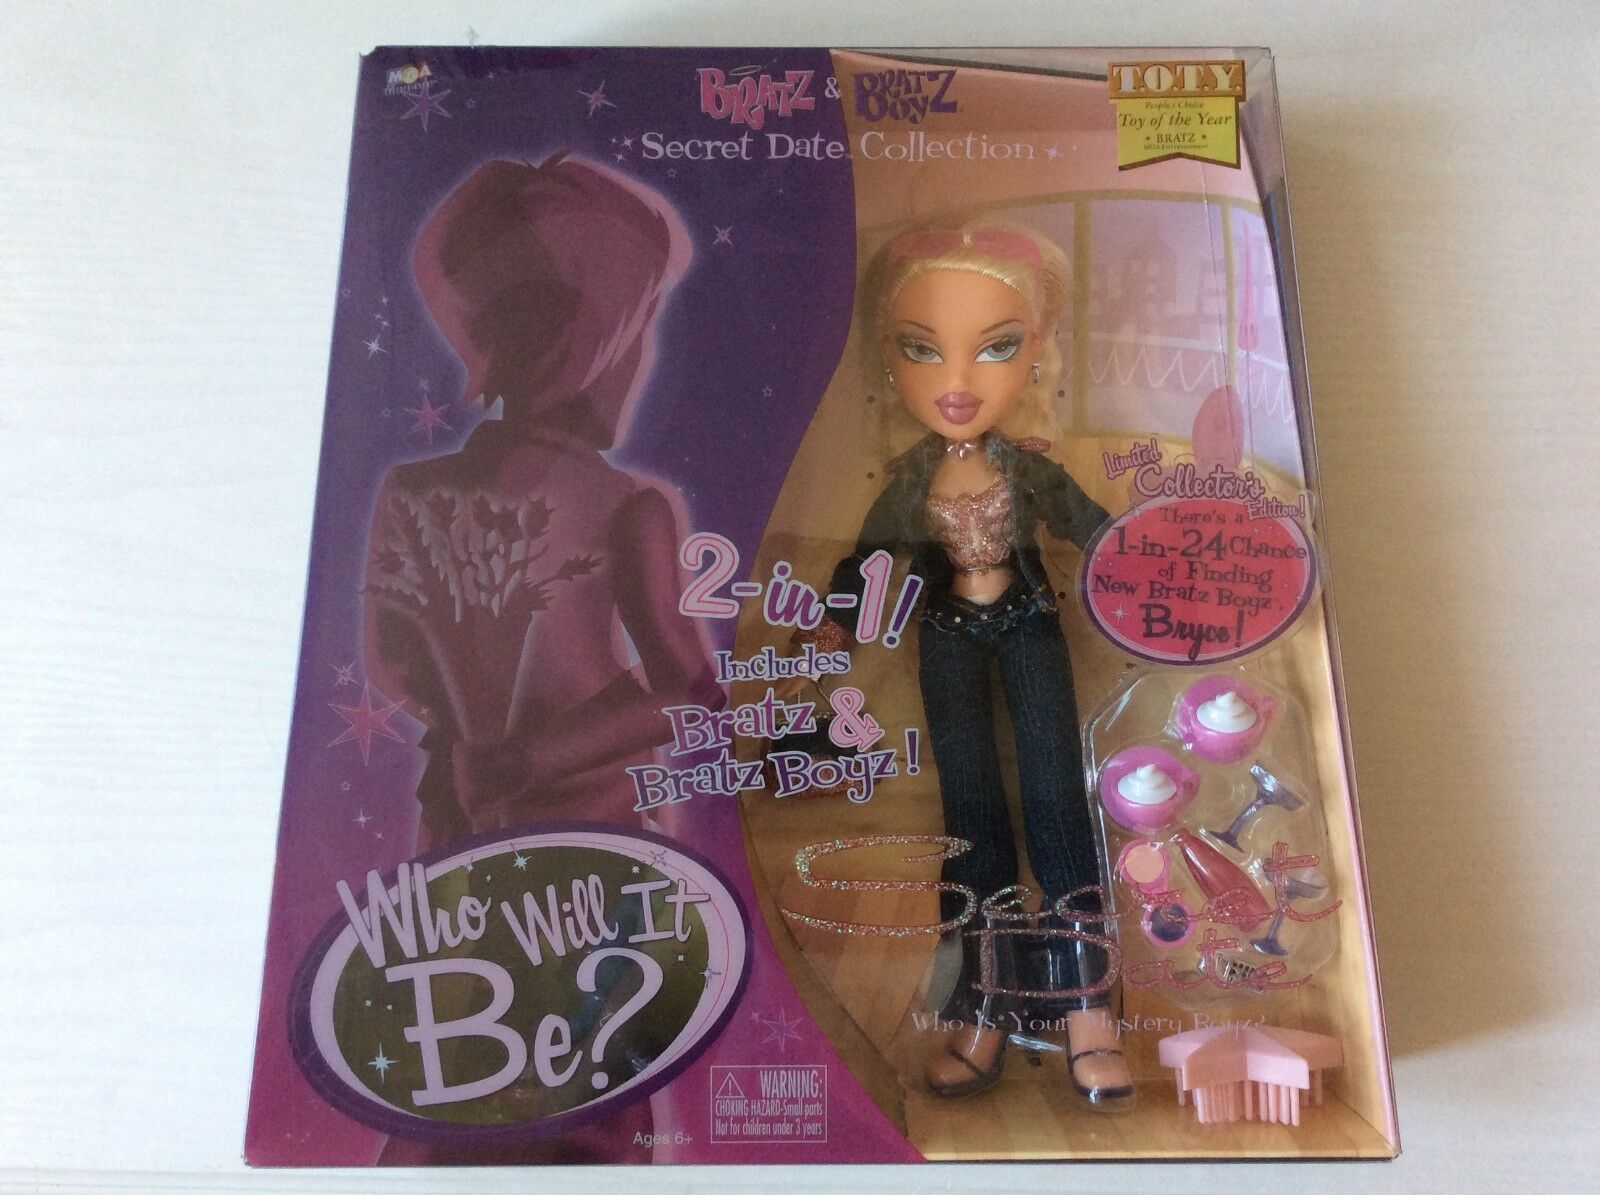 Bratz Secret Date Chloe and Mystery Date 2 in 1 Doll set ,Rare, collectible